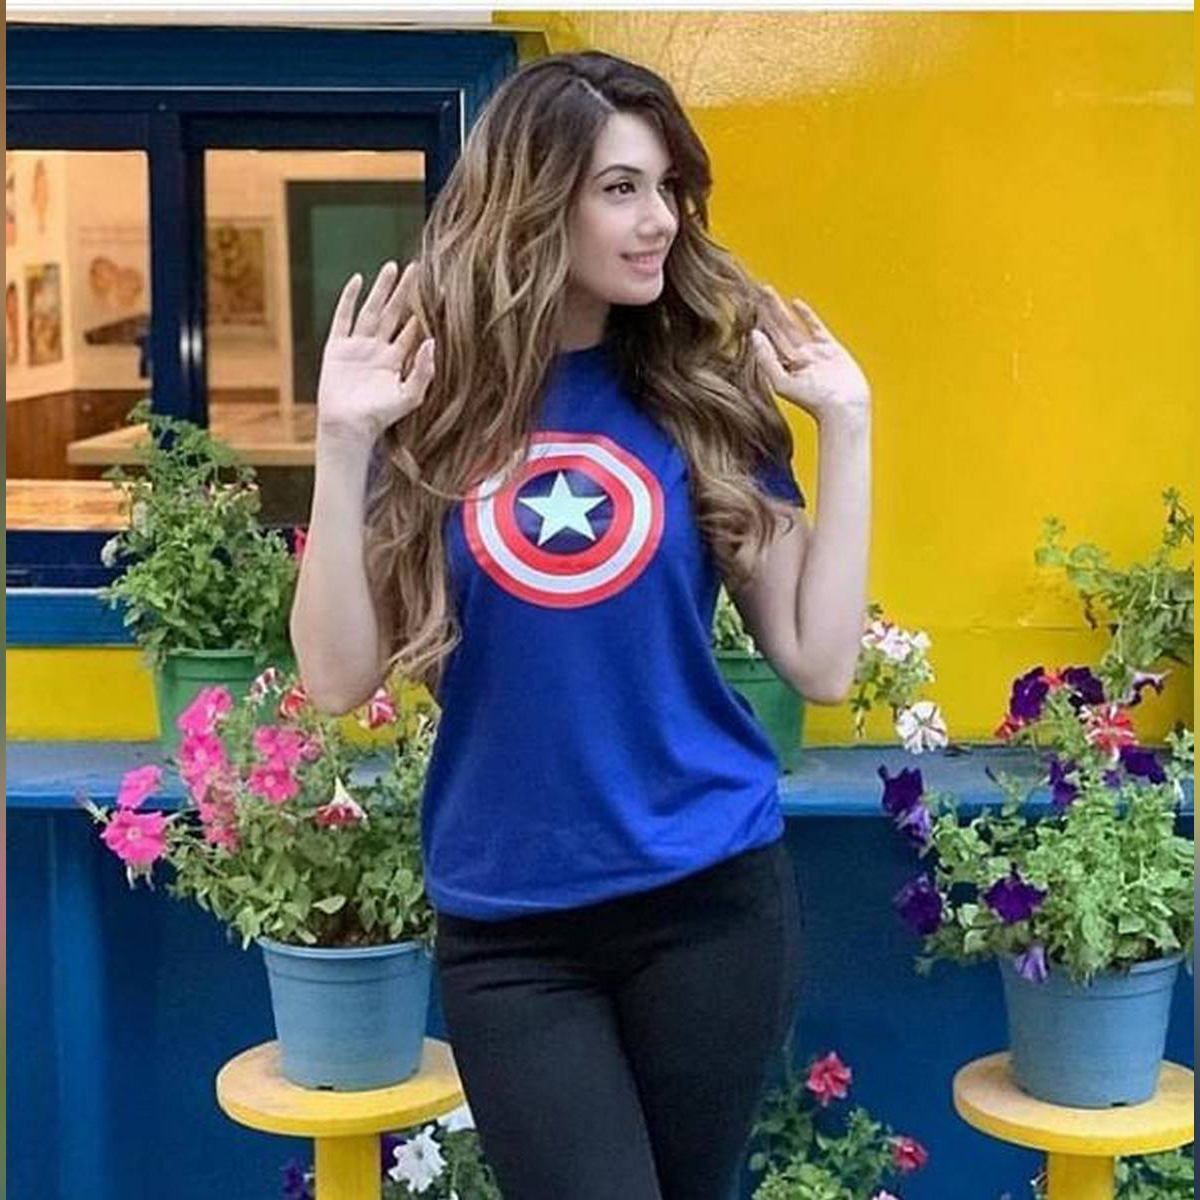 Captain America Royal Blue Half Sleeve Printed T-shirt For Women Casual Cotton tshirts For Lady Top Tee - 11192019